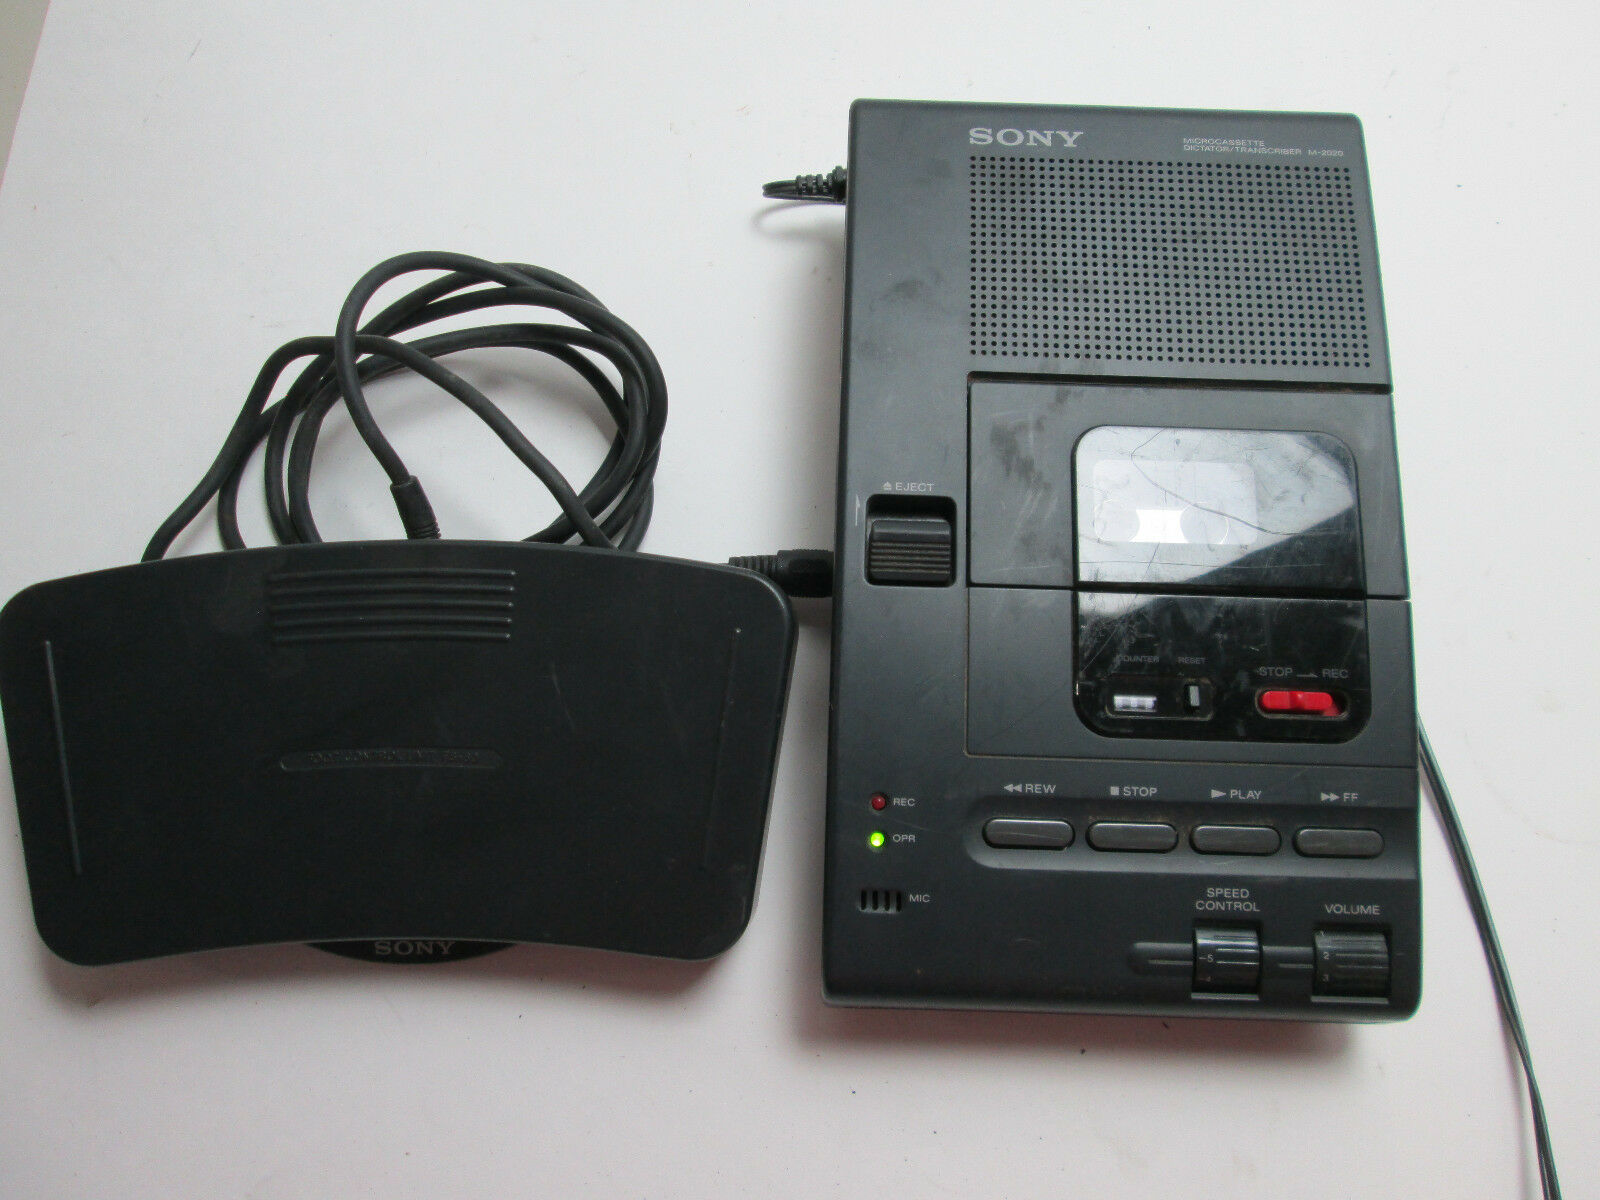 Sony Microcassette Dictator/Transcriber with Foot Pedal M2020 Speed Control T